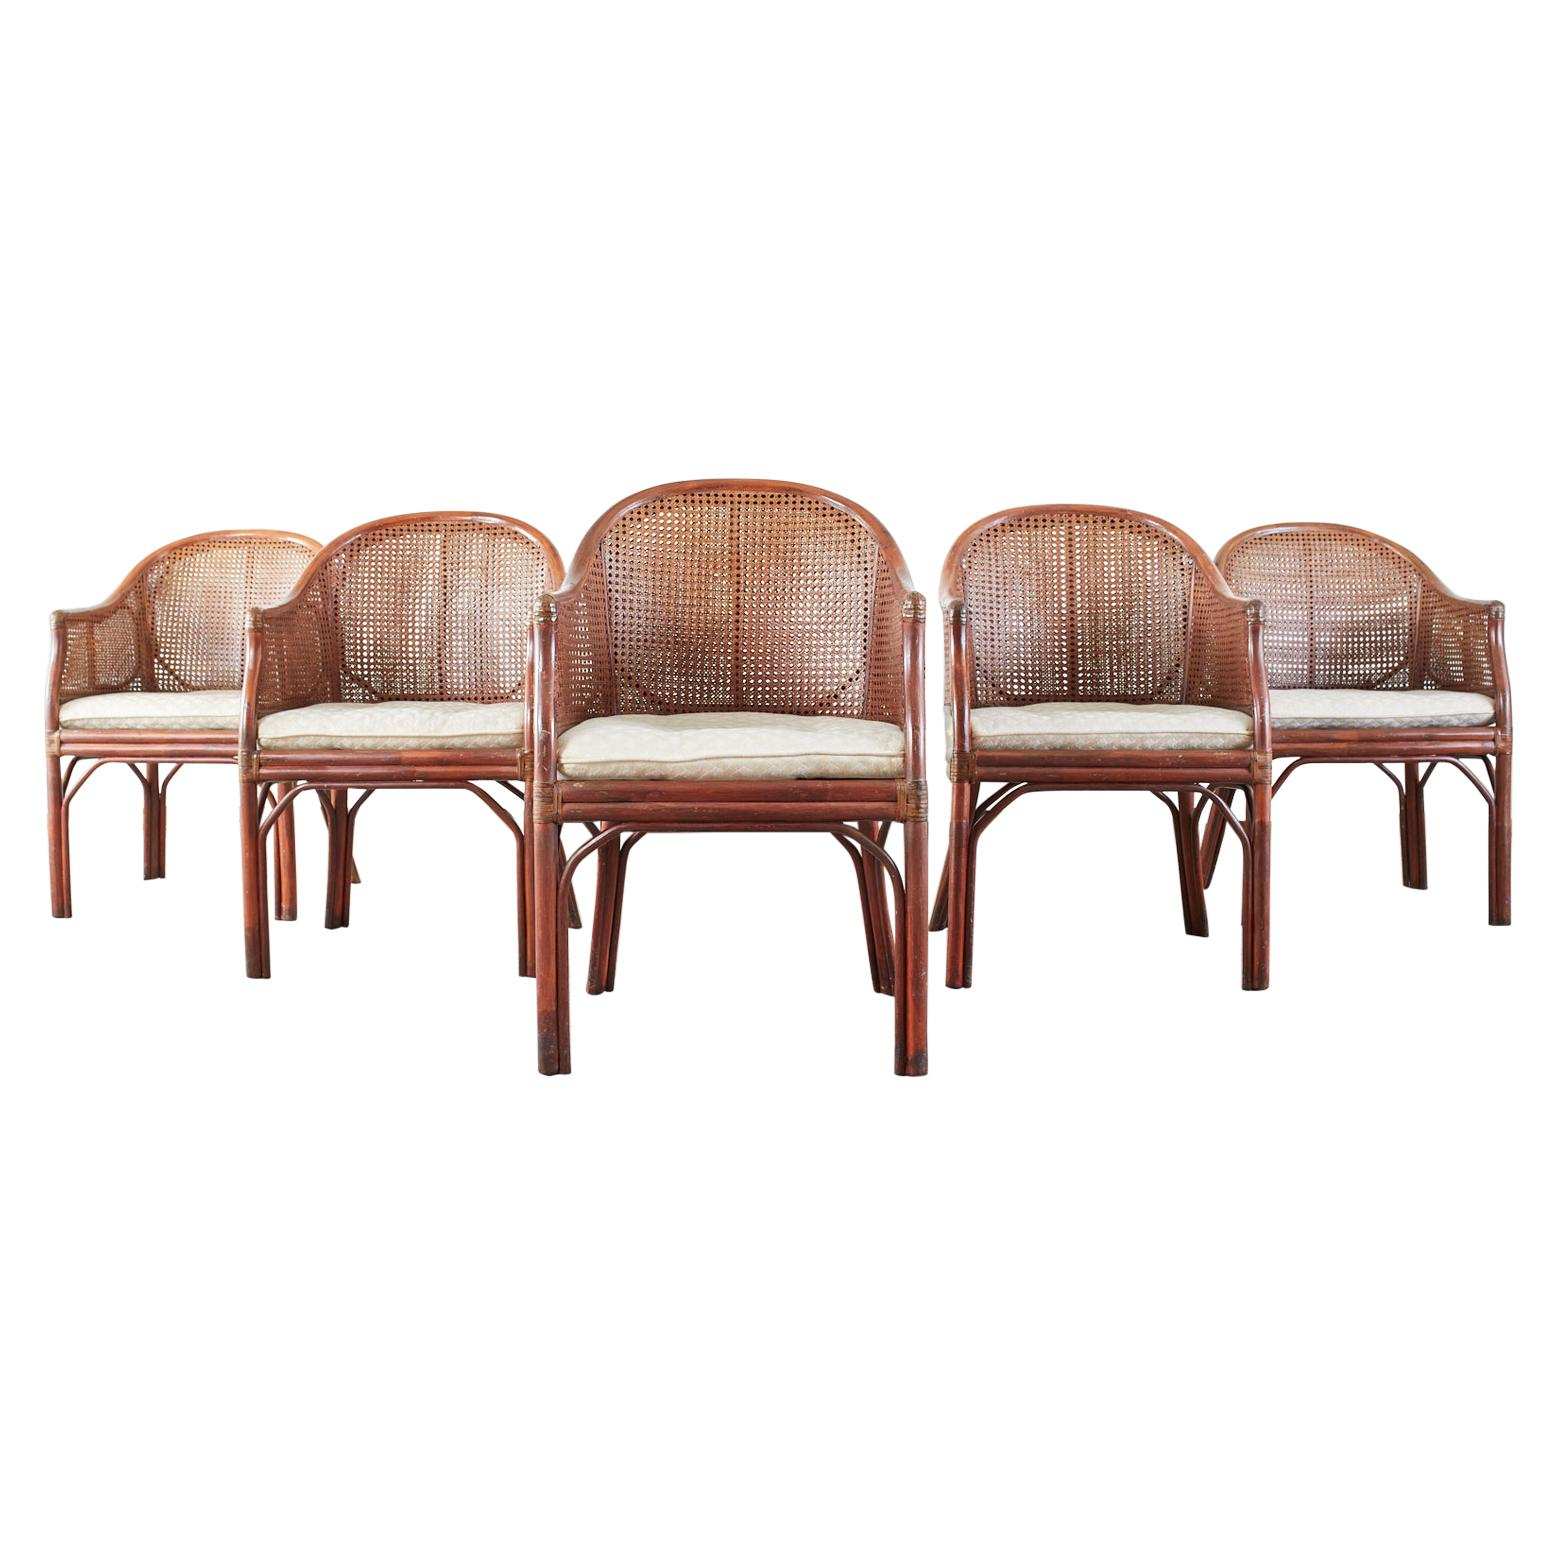 Set of Five McGuire Style Rattan Cane Barrel Back Dining Chairs